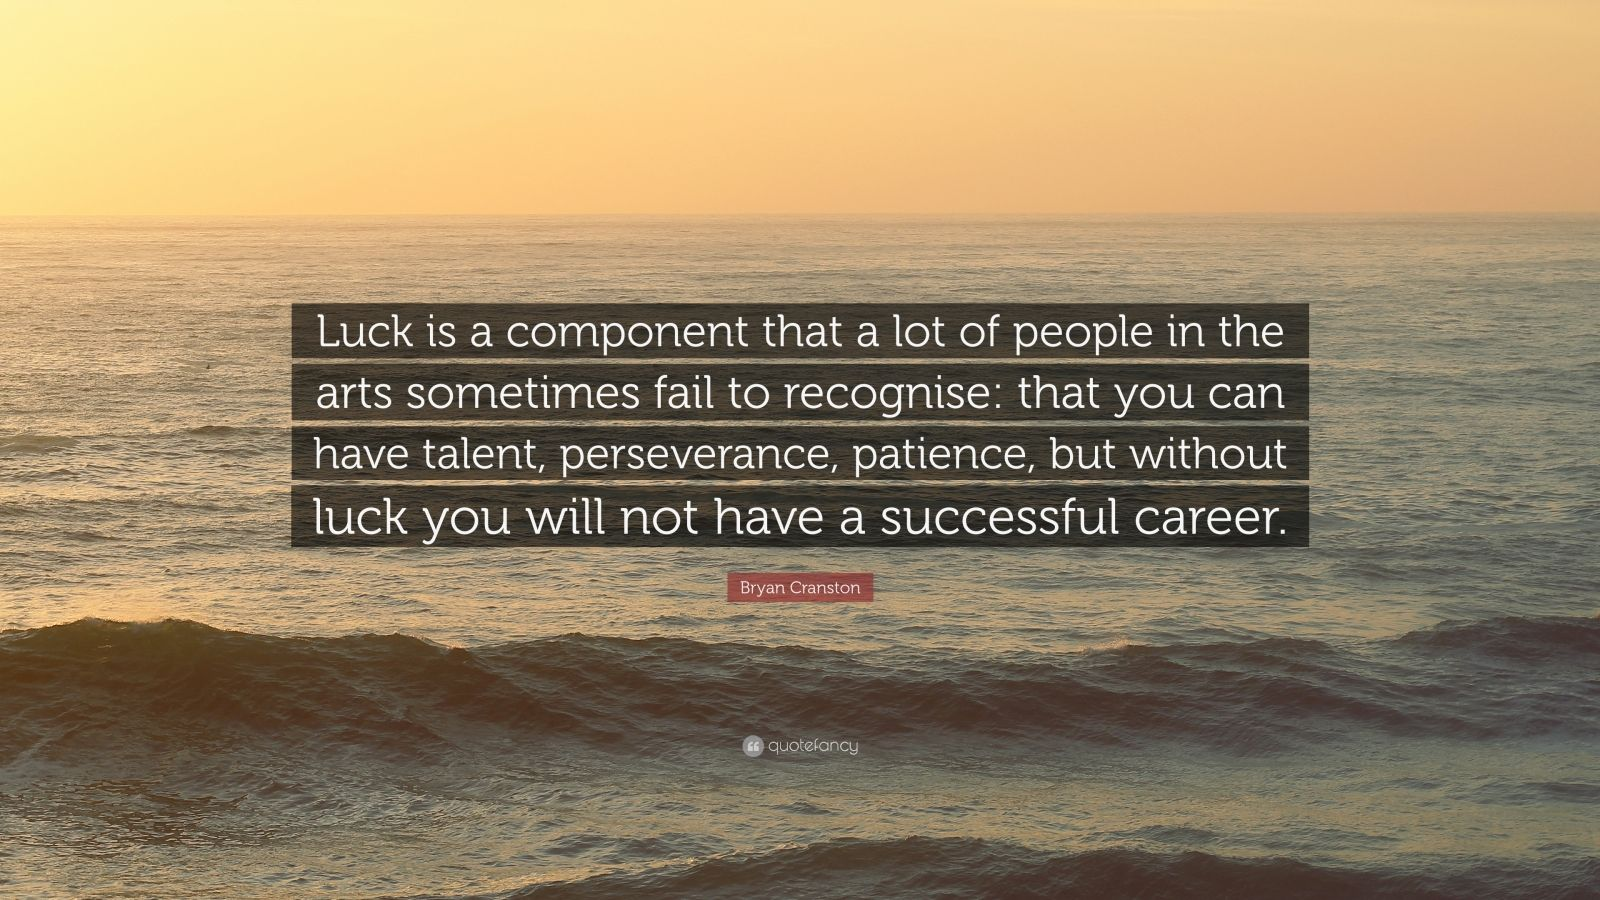 """Bryan Cranston Quote: """"Luck is a component that a lot of people in the arts sometimes fail to recognise: that you can have talent, perseverance, patience, but without luck you will not have a successful career."""""""